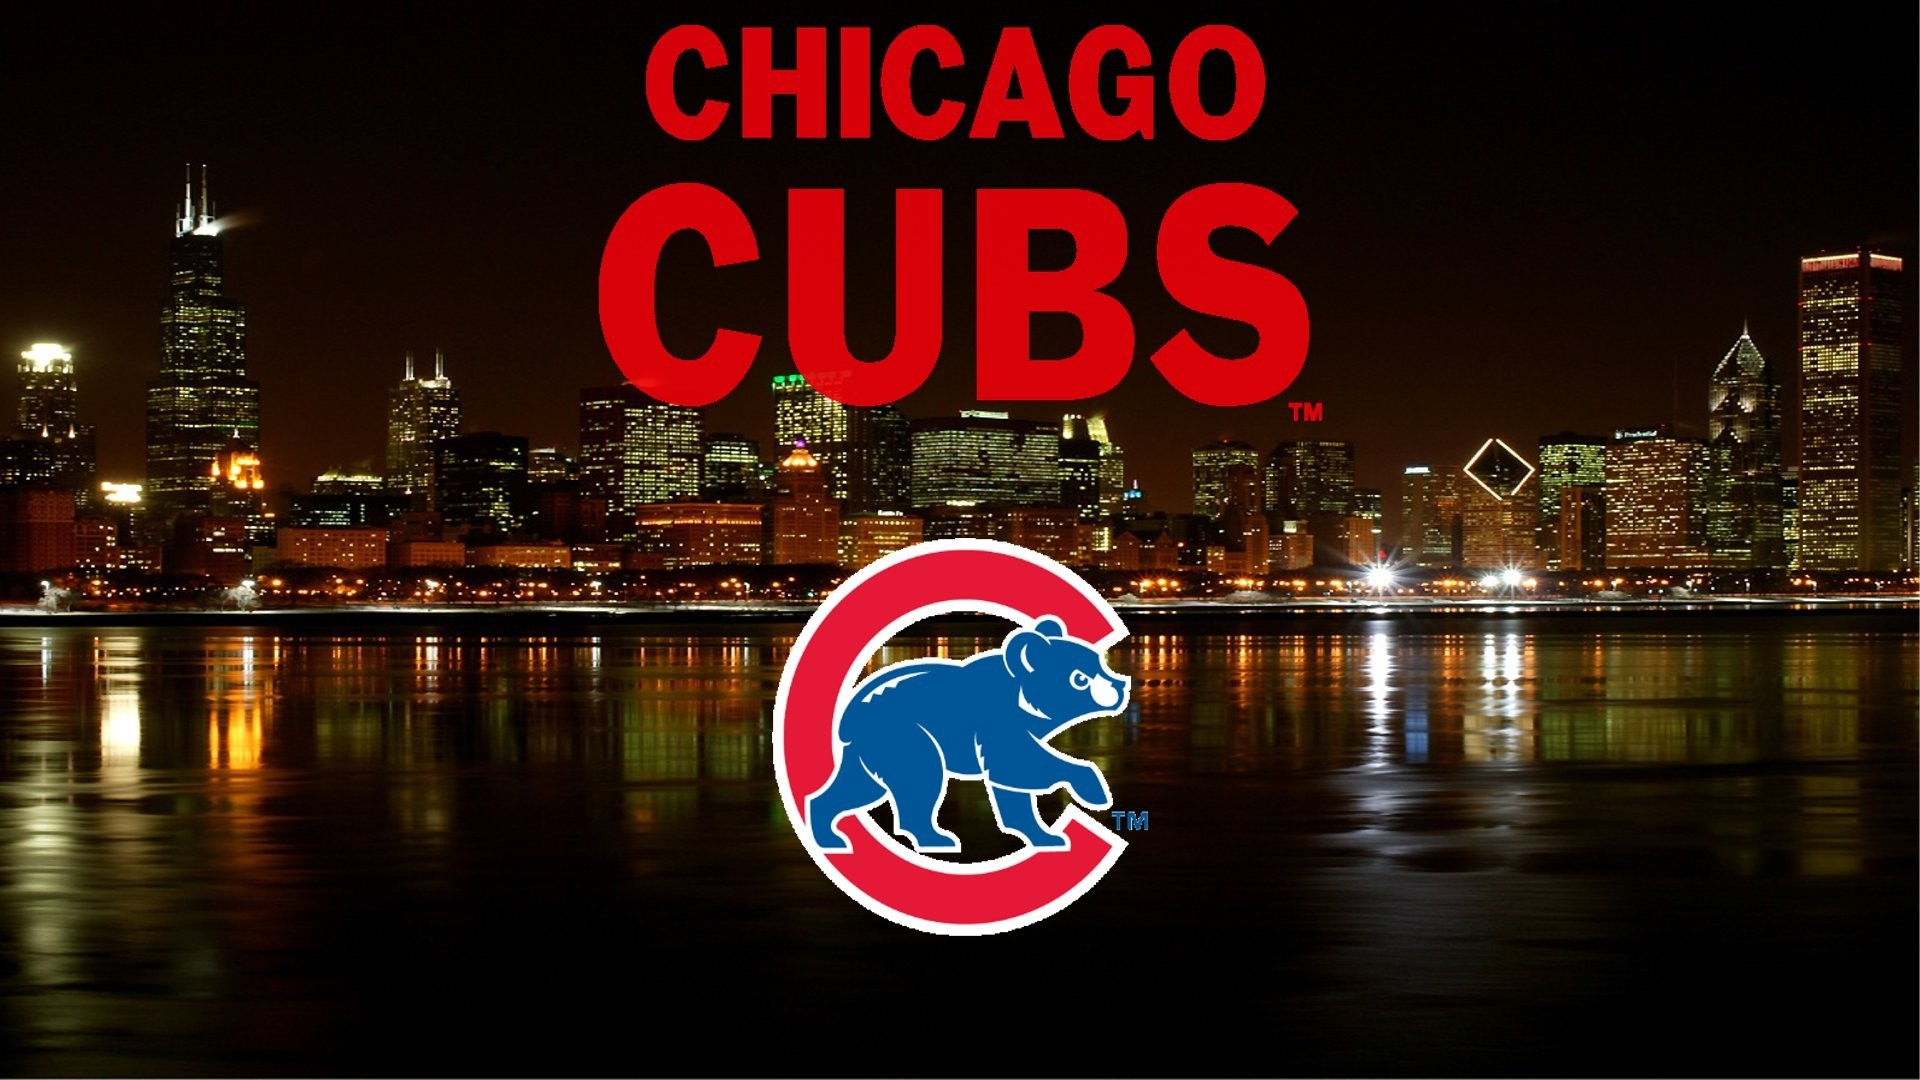 1920x1080 ... screensavers wallpapersafari; chicago cubs wallpaper for android wallpapersafari .